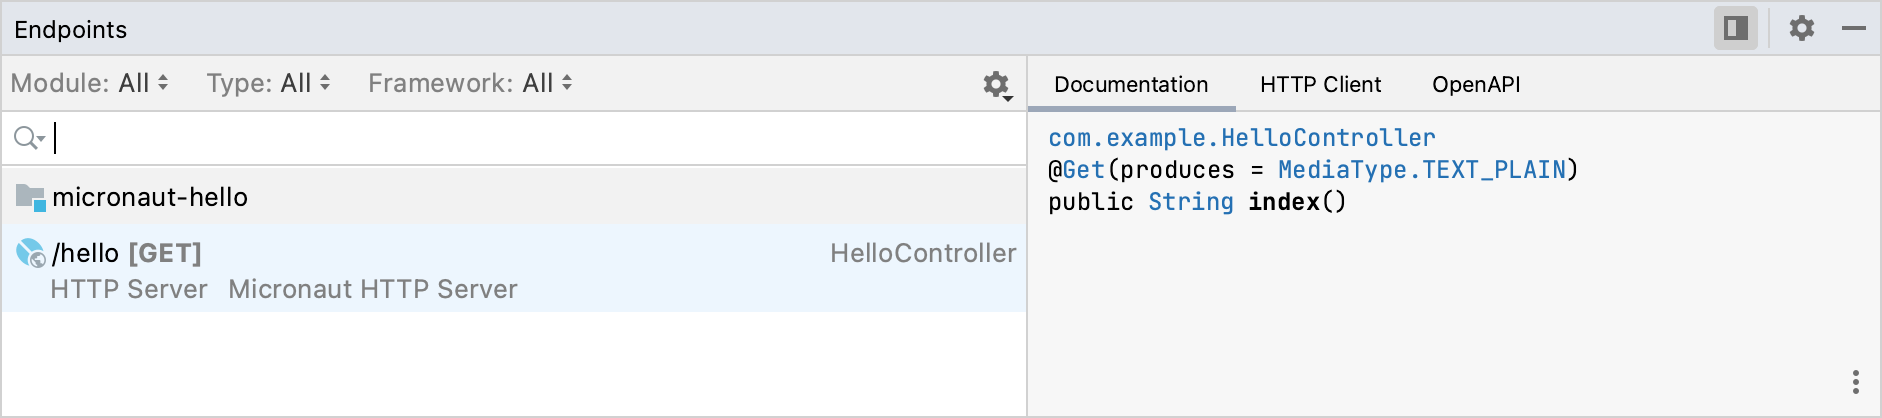 The Endpoints tool window with the sample /hello endpoint